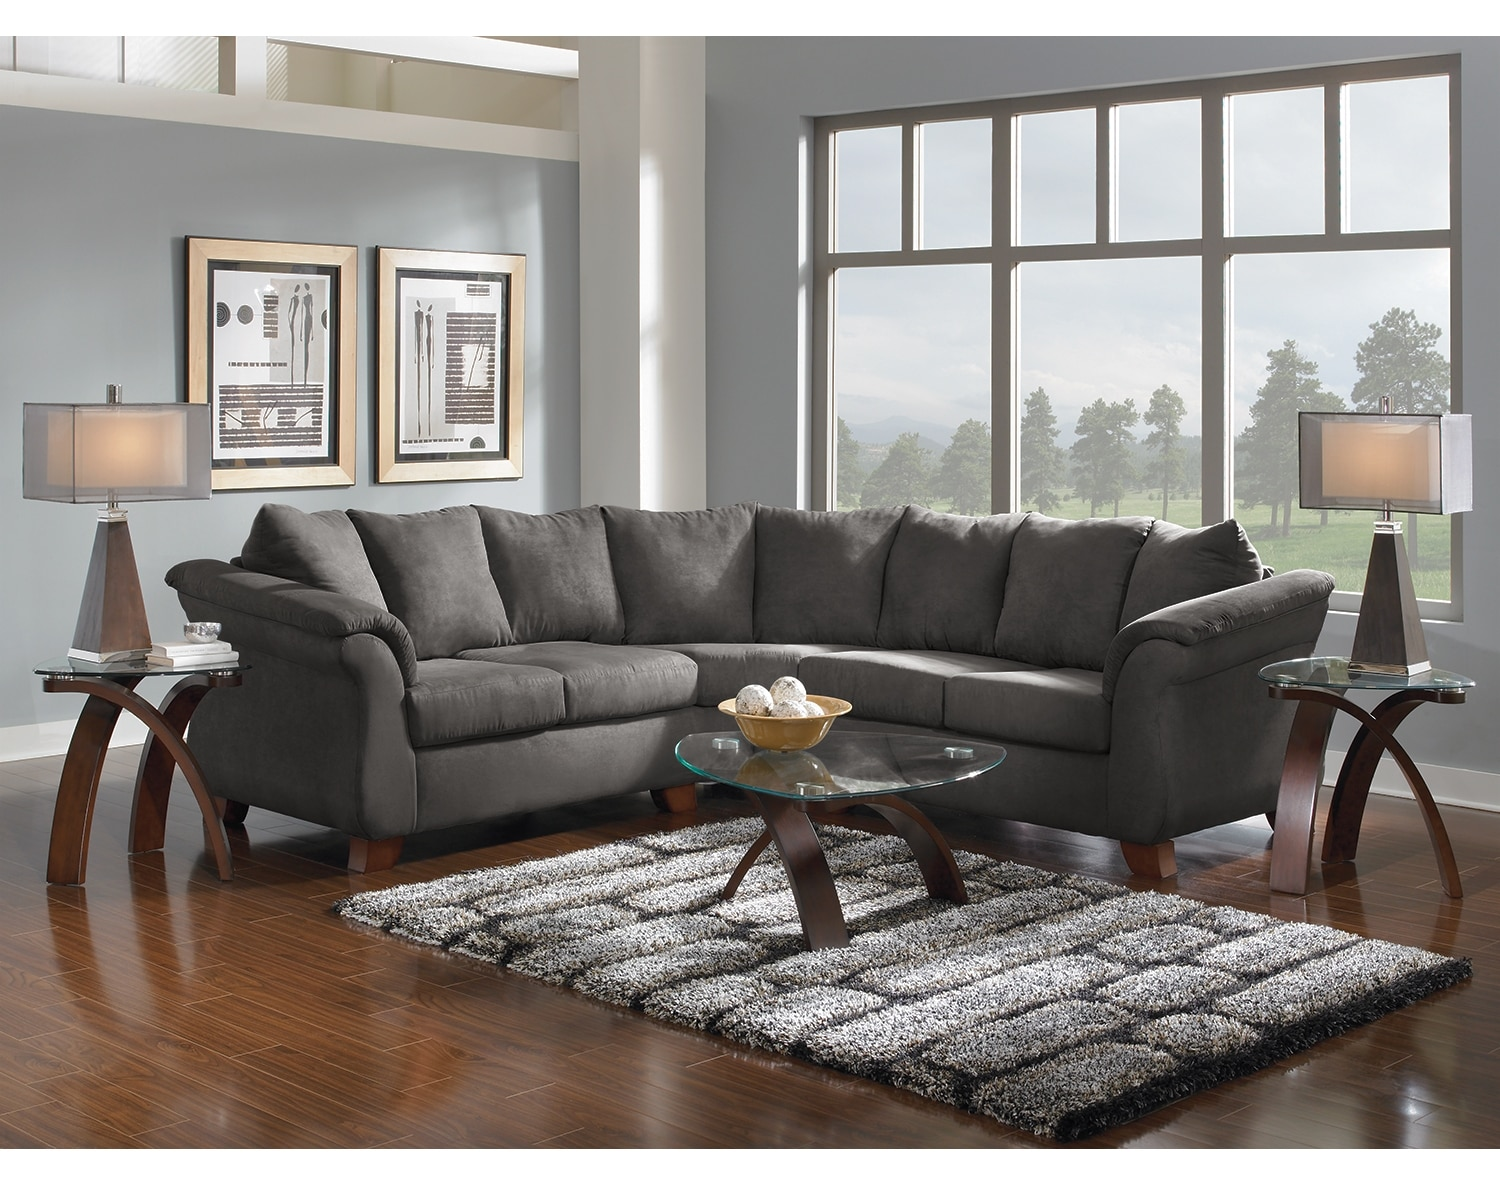 oak and sofa liquidators fresno best apartment bed living room collections value city furniture